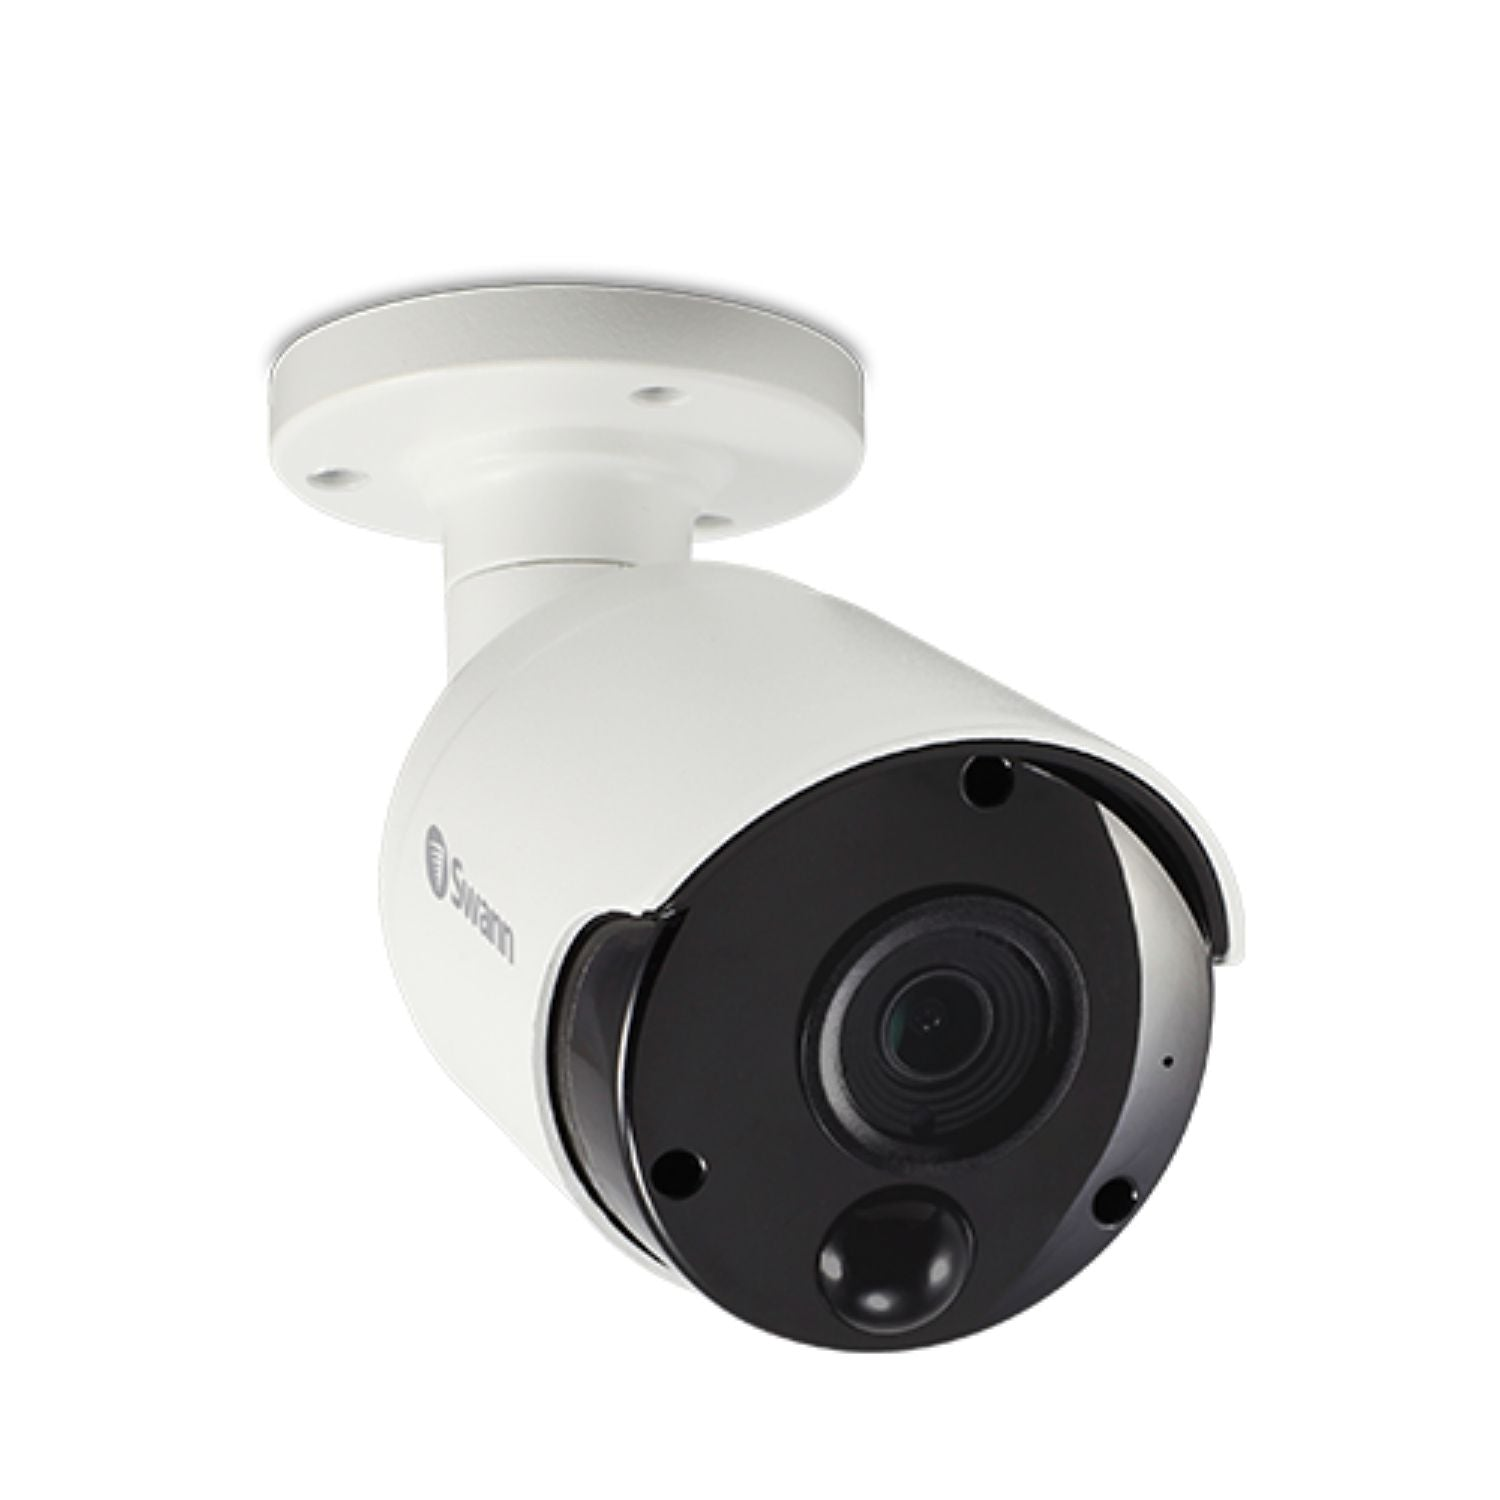 Swann 16-Channel Security System: 4K Ultra HD NVR, 8 x Bullet Camera, Thermal and Face Recognition, 2TB HDD